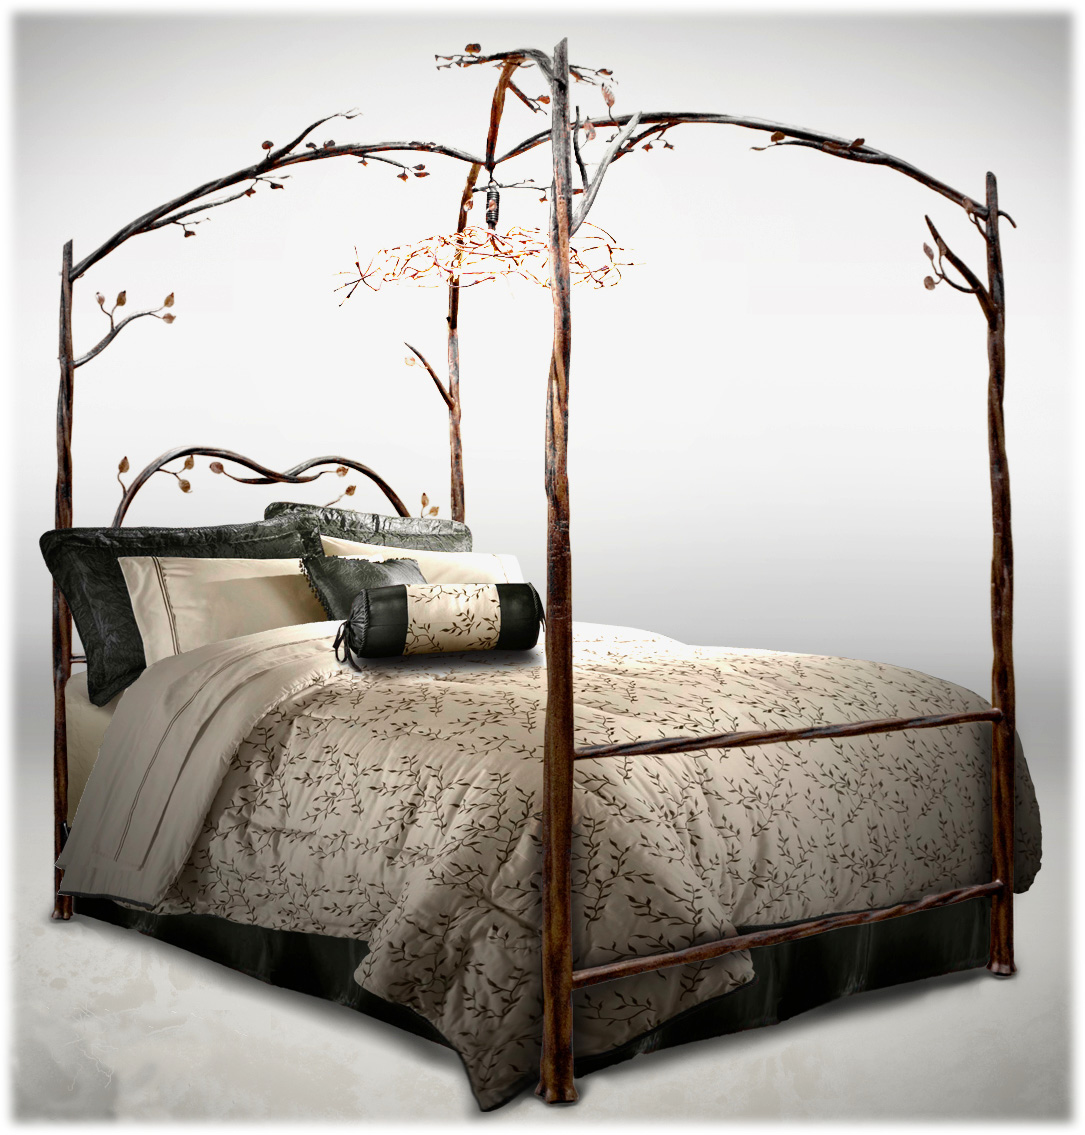 1085x1135px 8 Popular Forest Canopy Bed Frame Picture in Bedroom